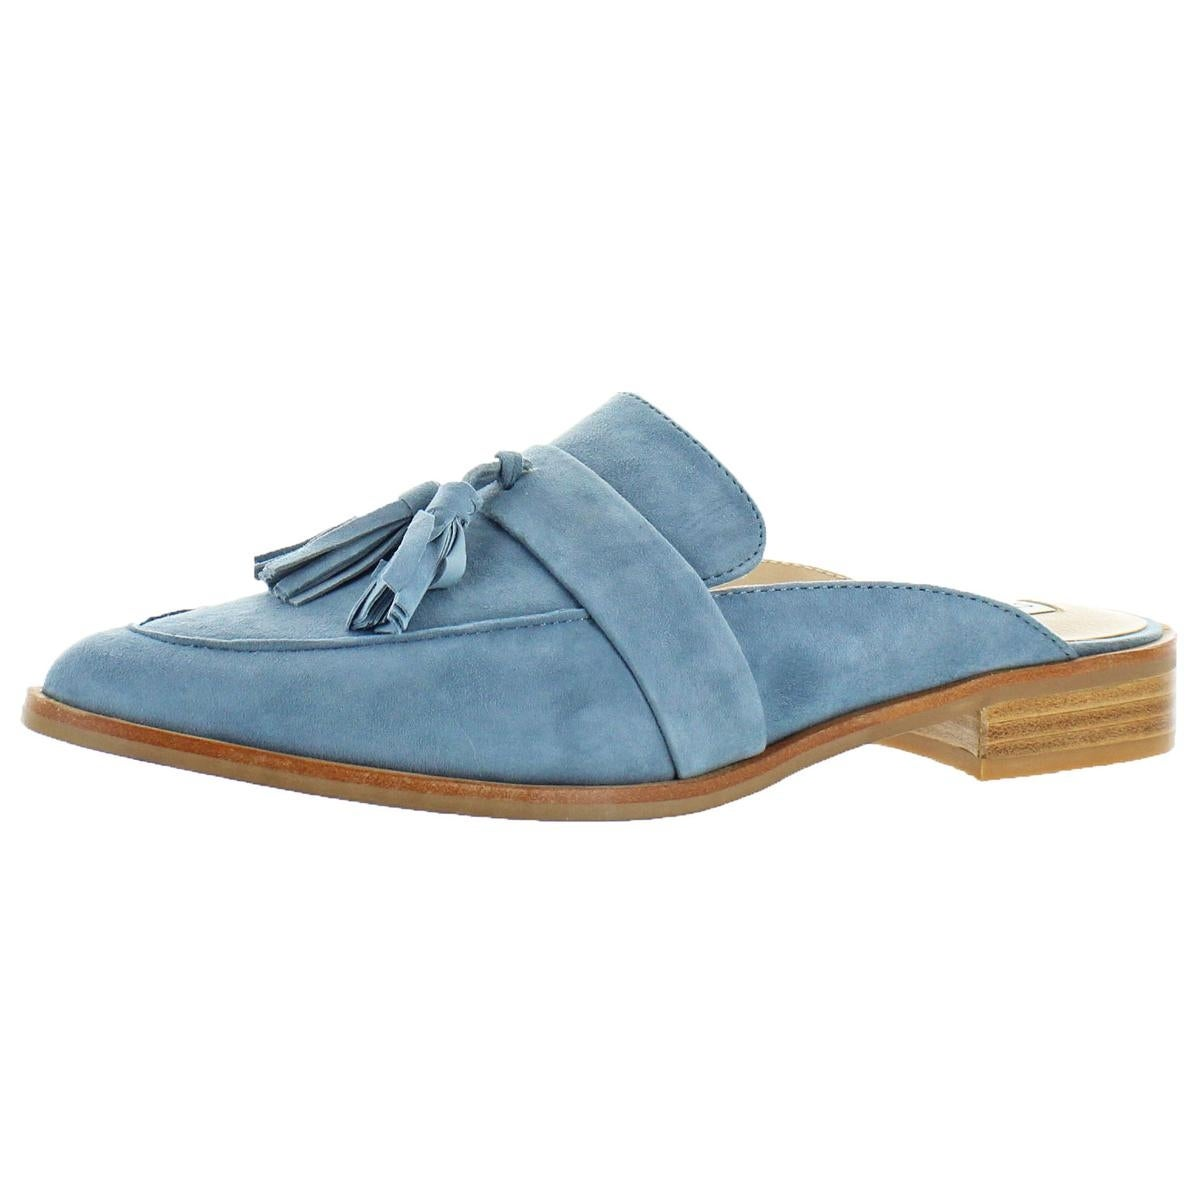 b343a9d171f Shop Steve Madden Womens Magan Mules Solid Tassel - Free Shipping On Orders  Over  45 - Overstock - 16559271